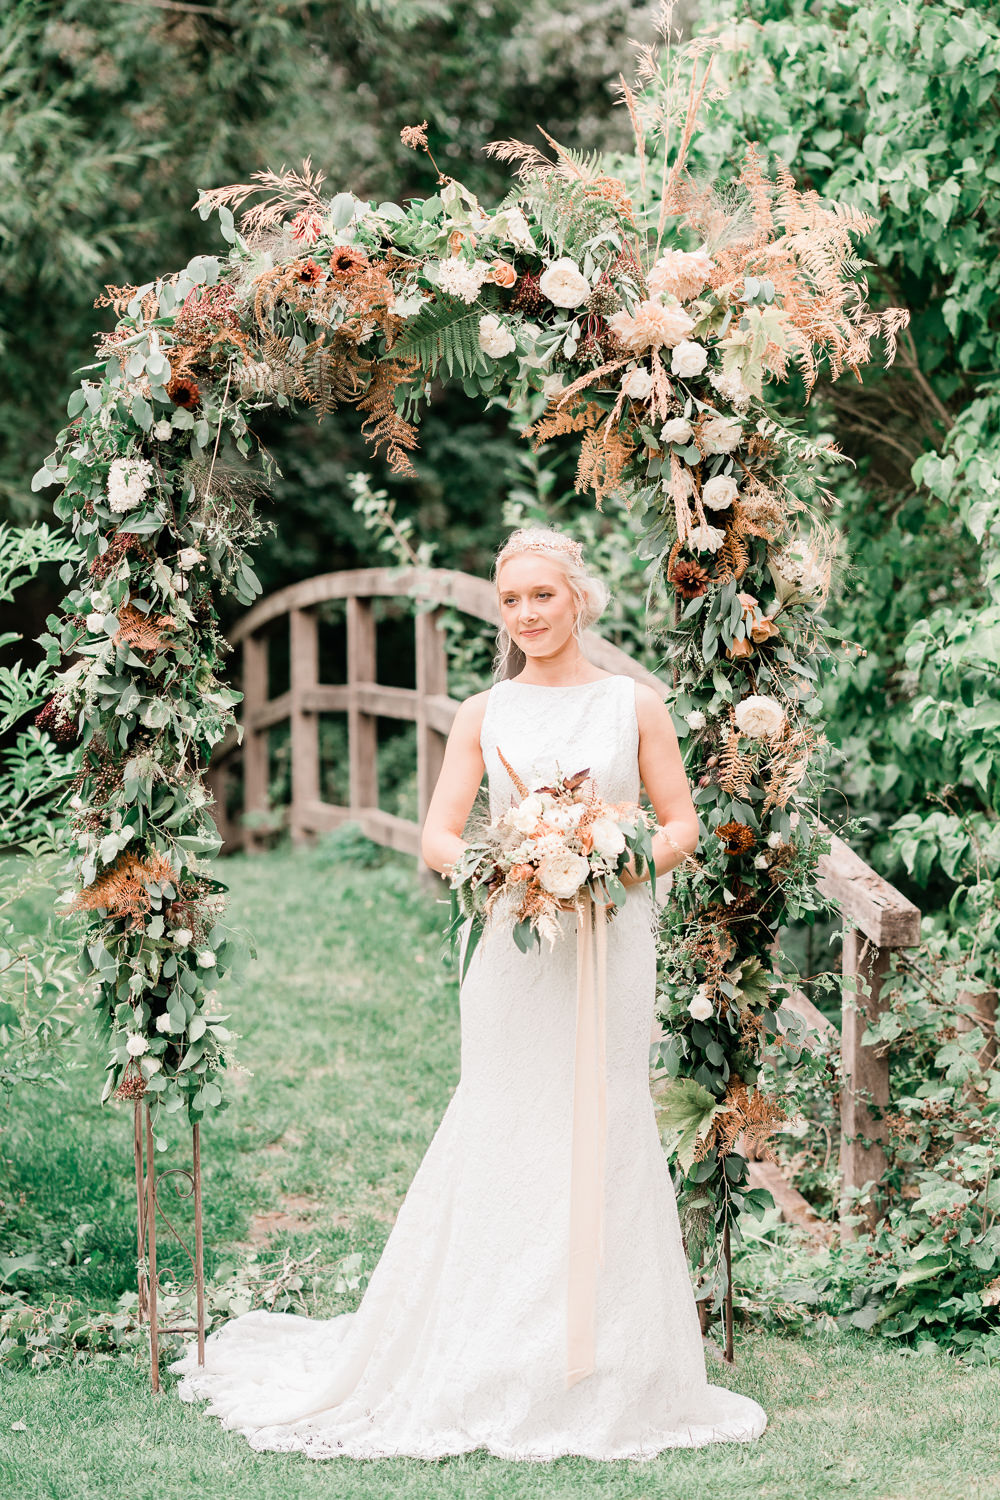 Flower Arch Floral Backdrop Ferns Grass Berries Dahlias Rose Roses and Dahlias Apricot Blush Copper Golden Autumnal Wedding Ideas Joanna Briggs Photography